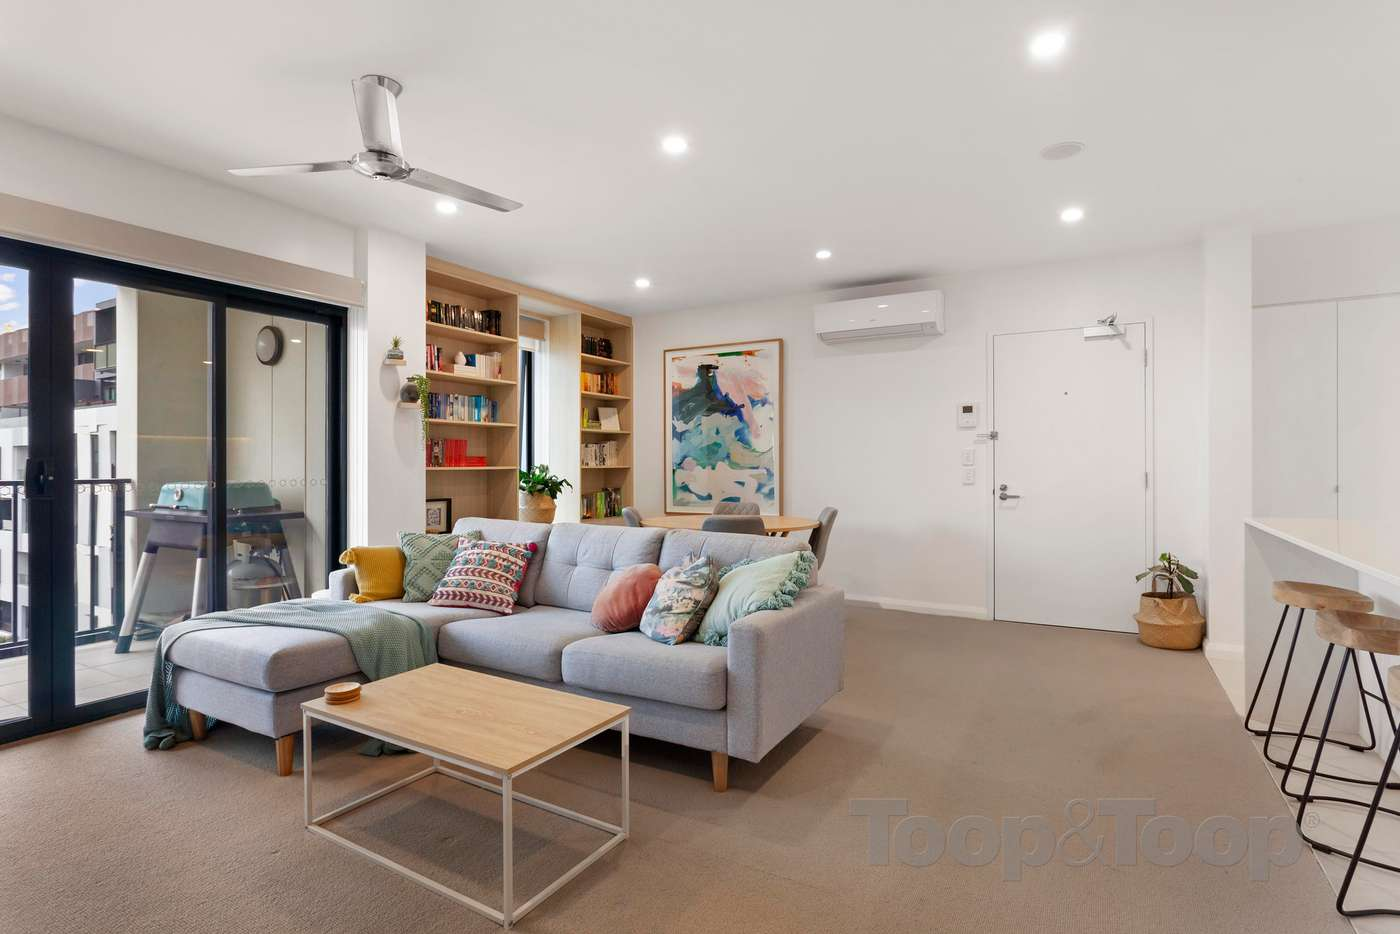 Fifth view of Homely apartment listing, 509/4 Fifth Street, Bowden SA 5007